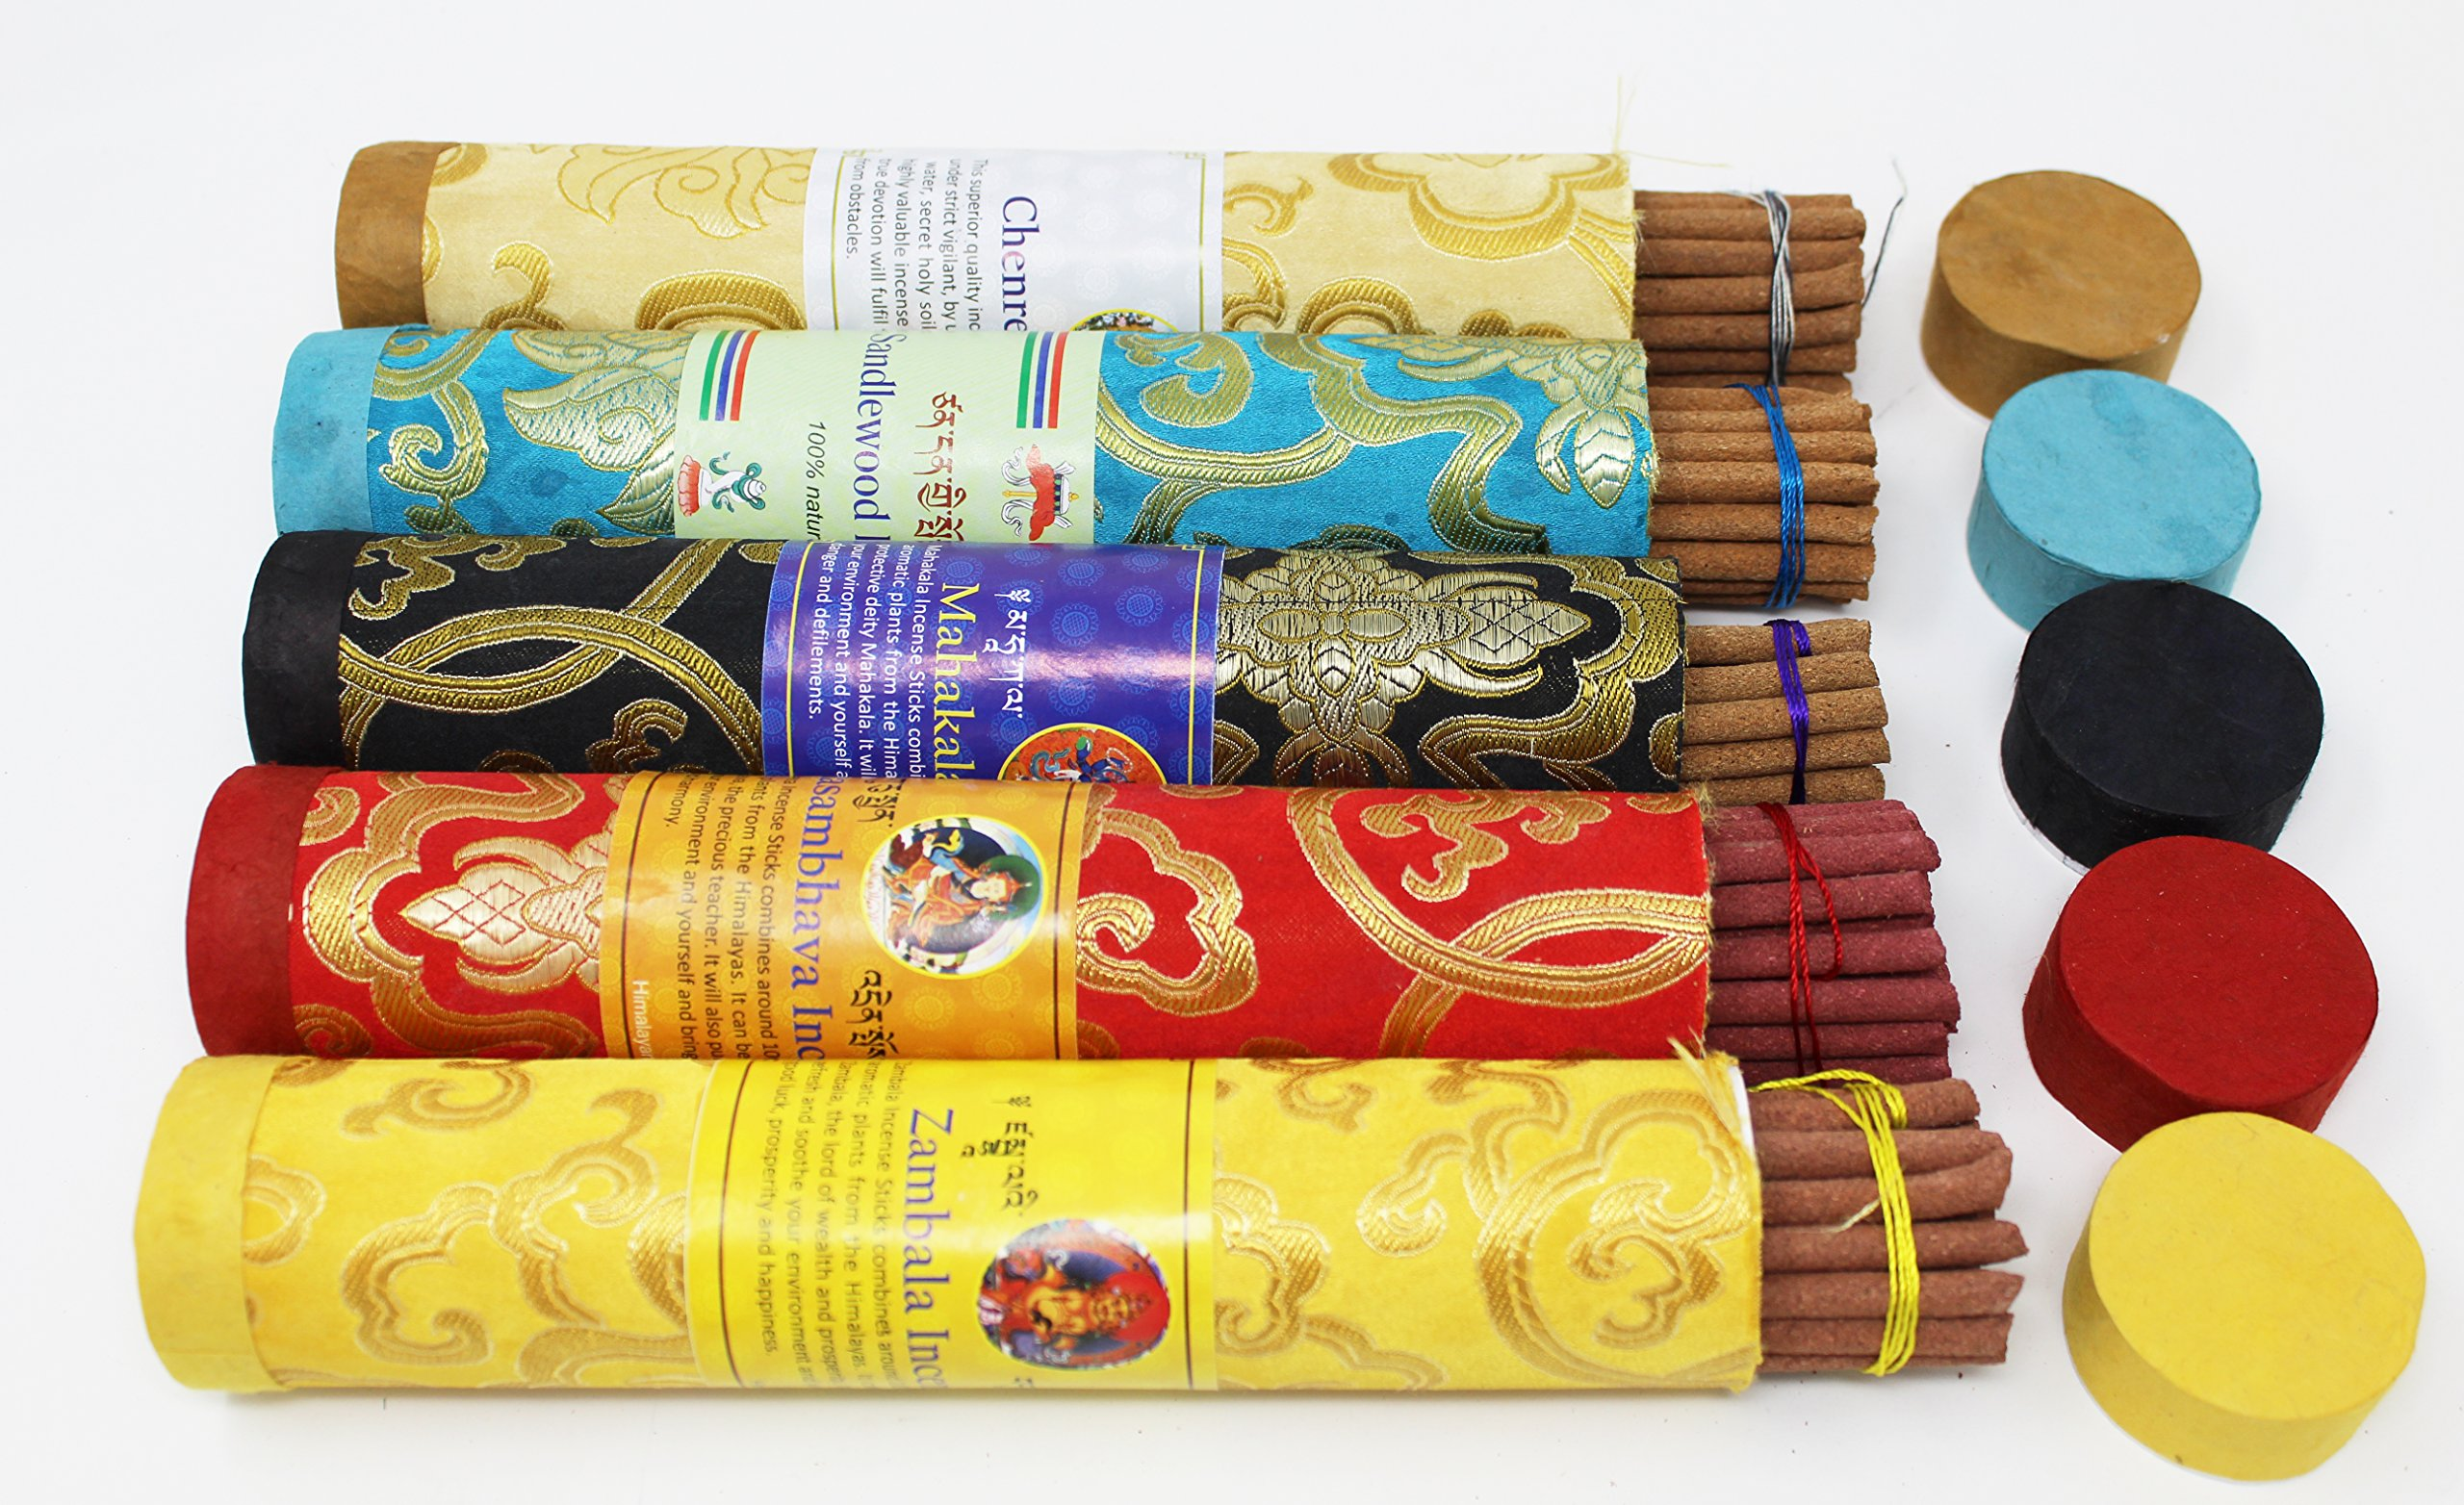 Juccini Tibetan Incense Sticks ~ Spiritual Healing Hand Rolled Assorted Incense Made from Organic Himalayan Herbs (Assorted) by Juccini (Image #2)